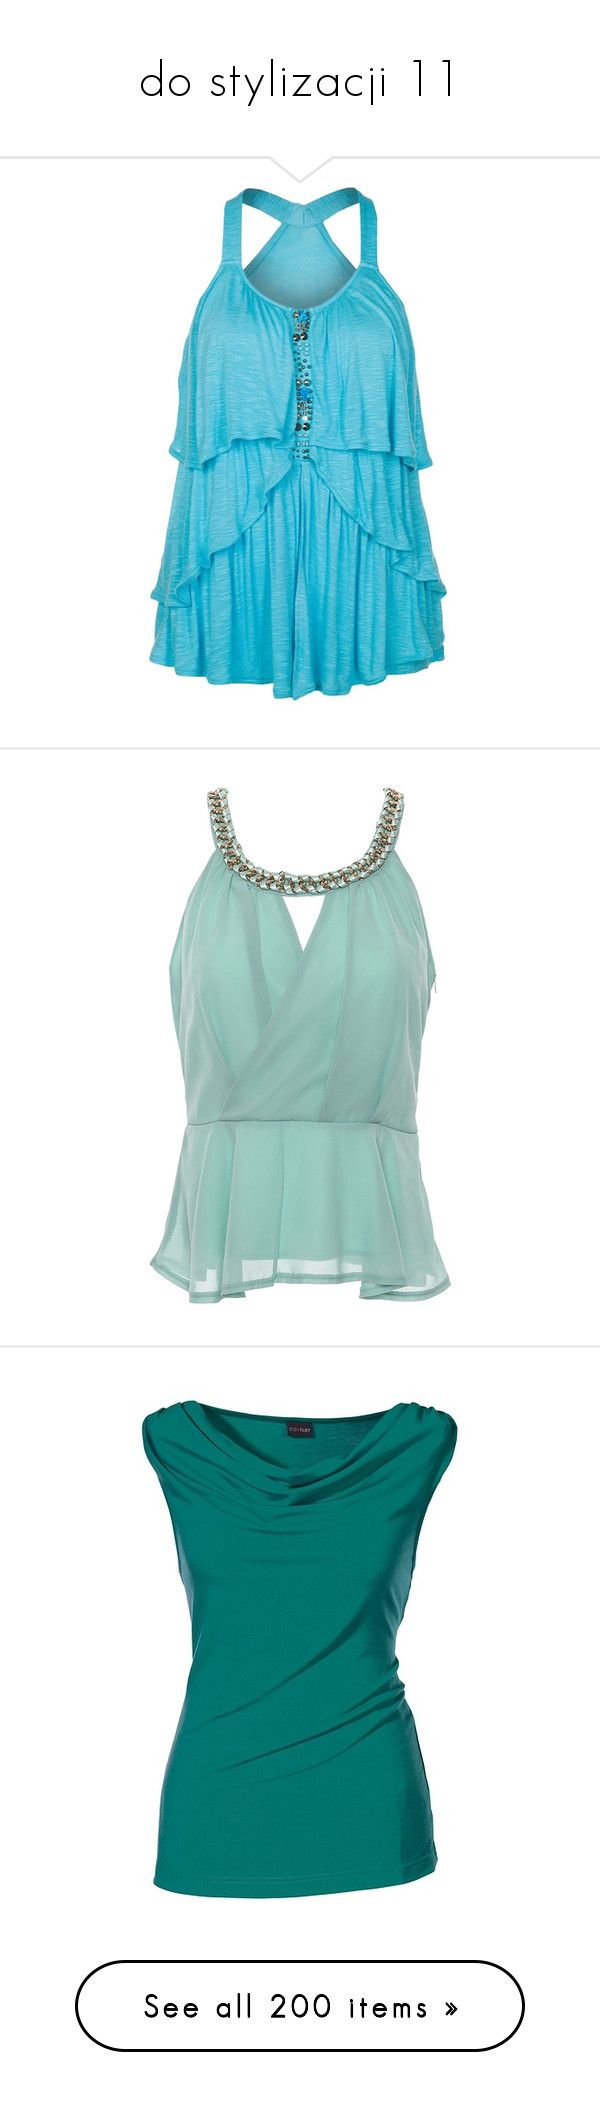 """do stylizacji 11"" by ania18018970 ❤ liked on Polyvore featuring tops, shirts, blusas, turquoise, vero moda tops, blue top, turquoise shirt, vero moda, vero moda shirt and tank tops"